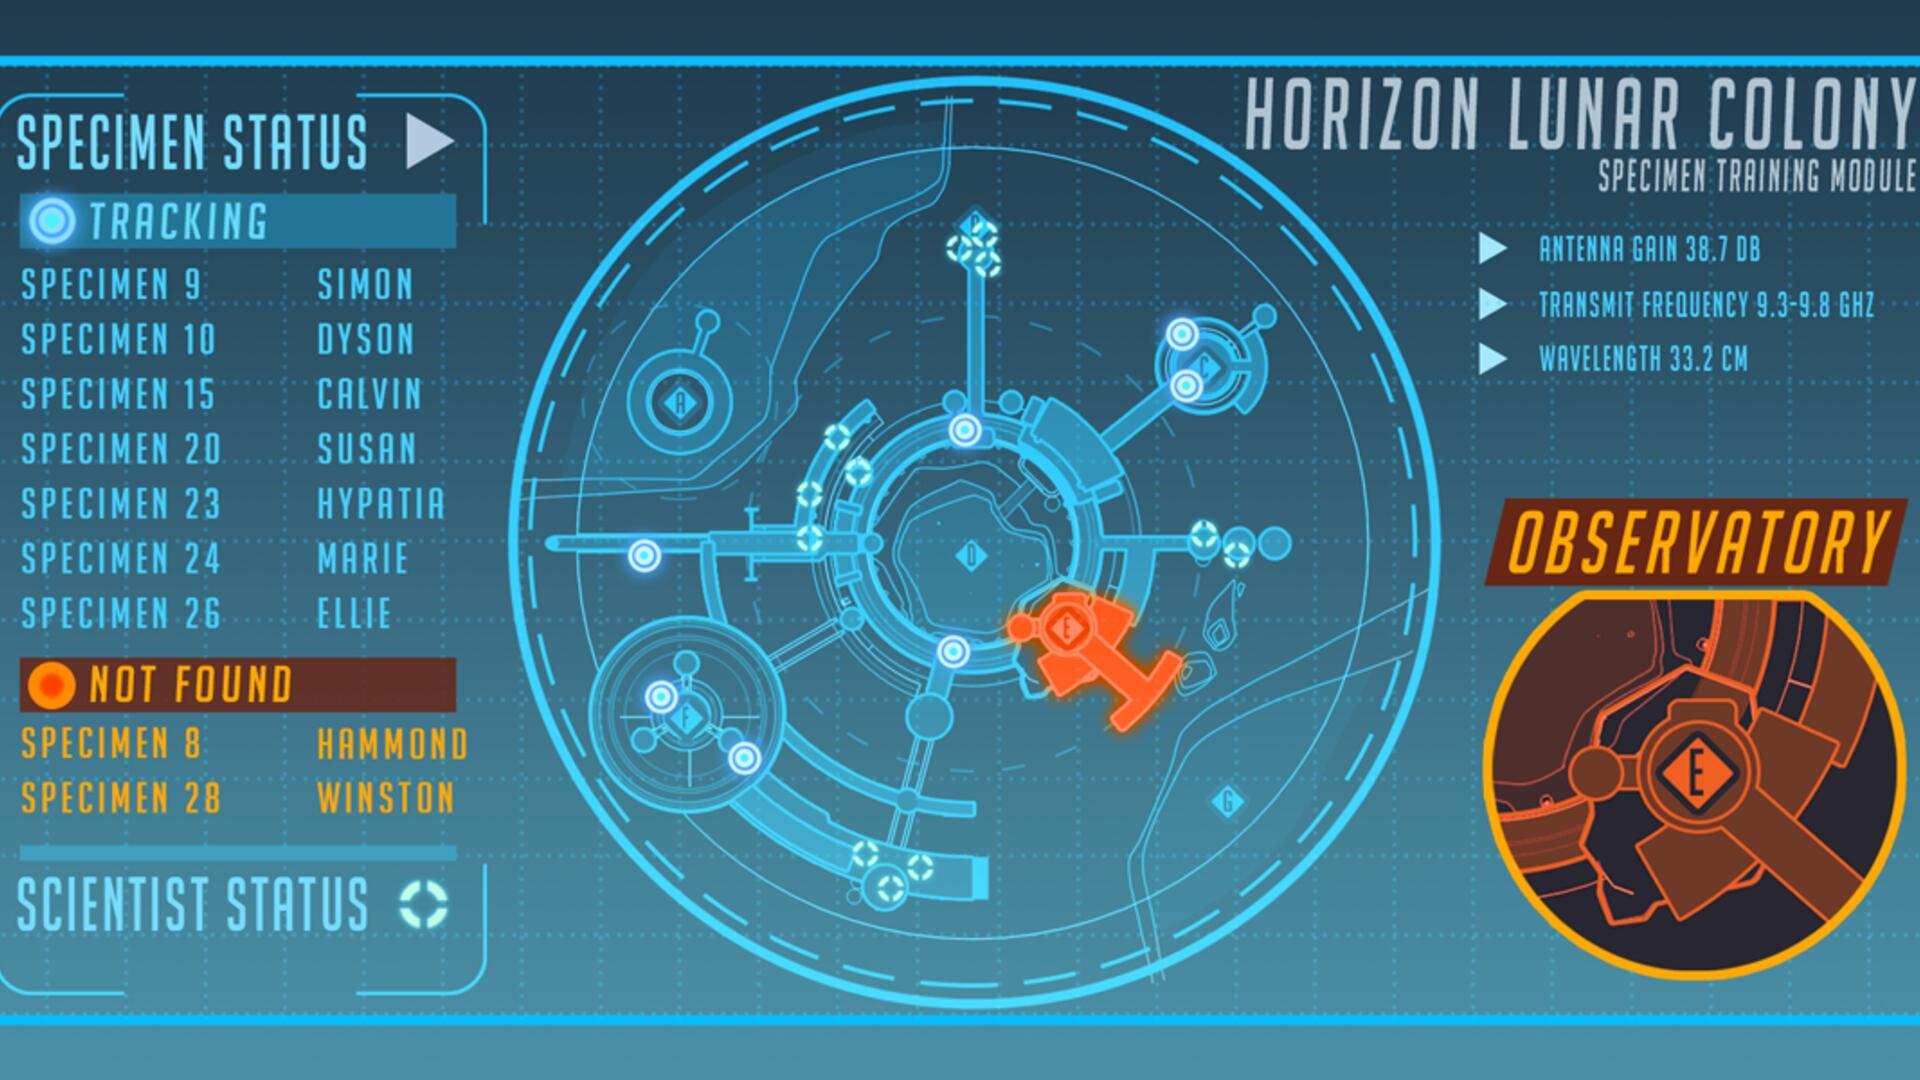 Blizzard Teases New Overwatch Content With Mysterious Space Transmission